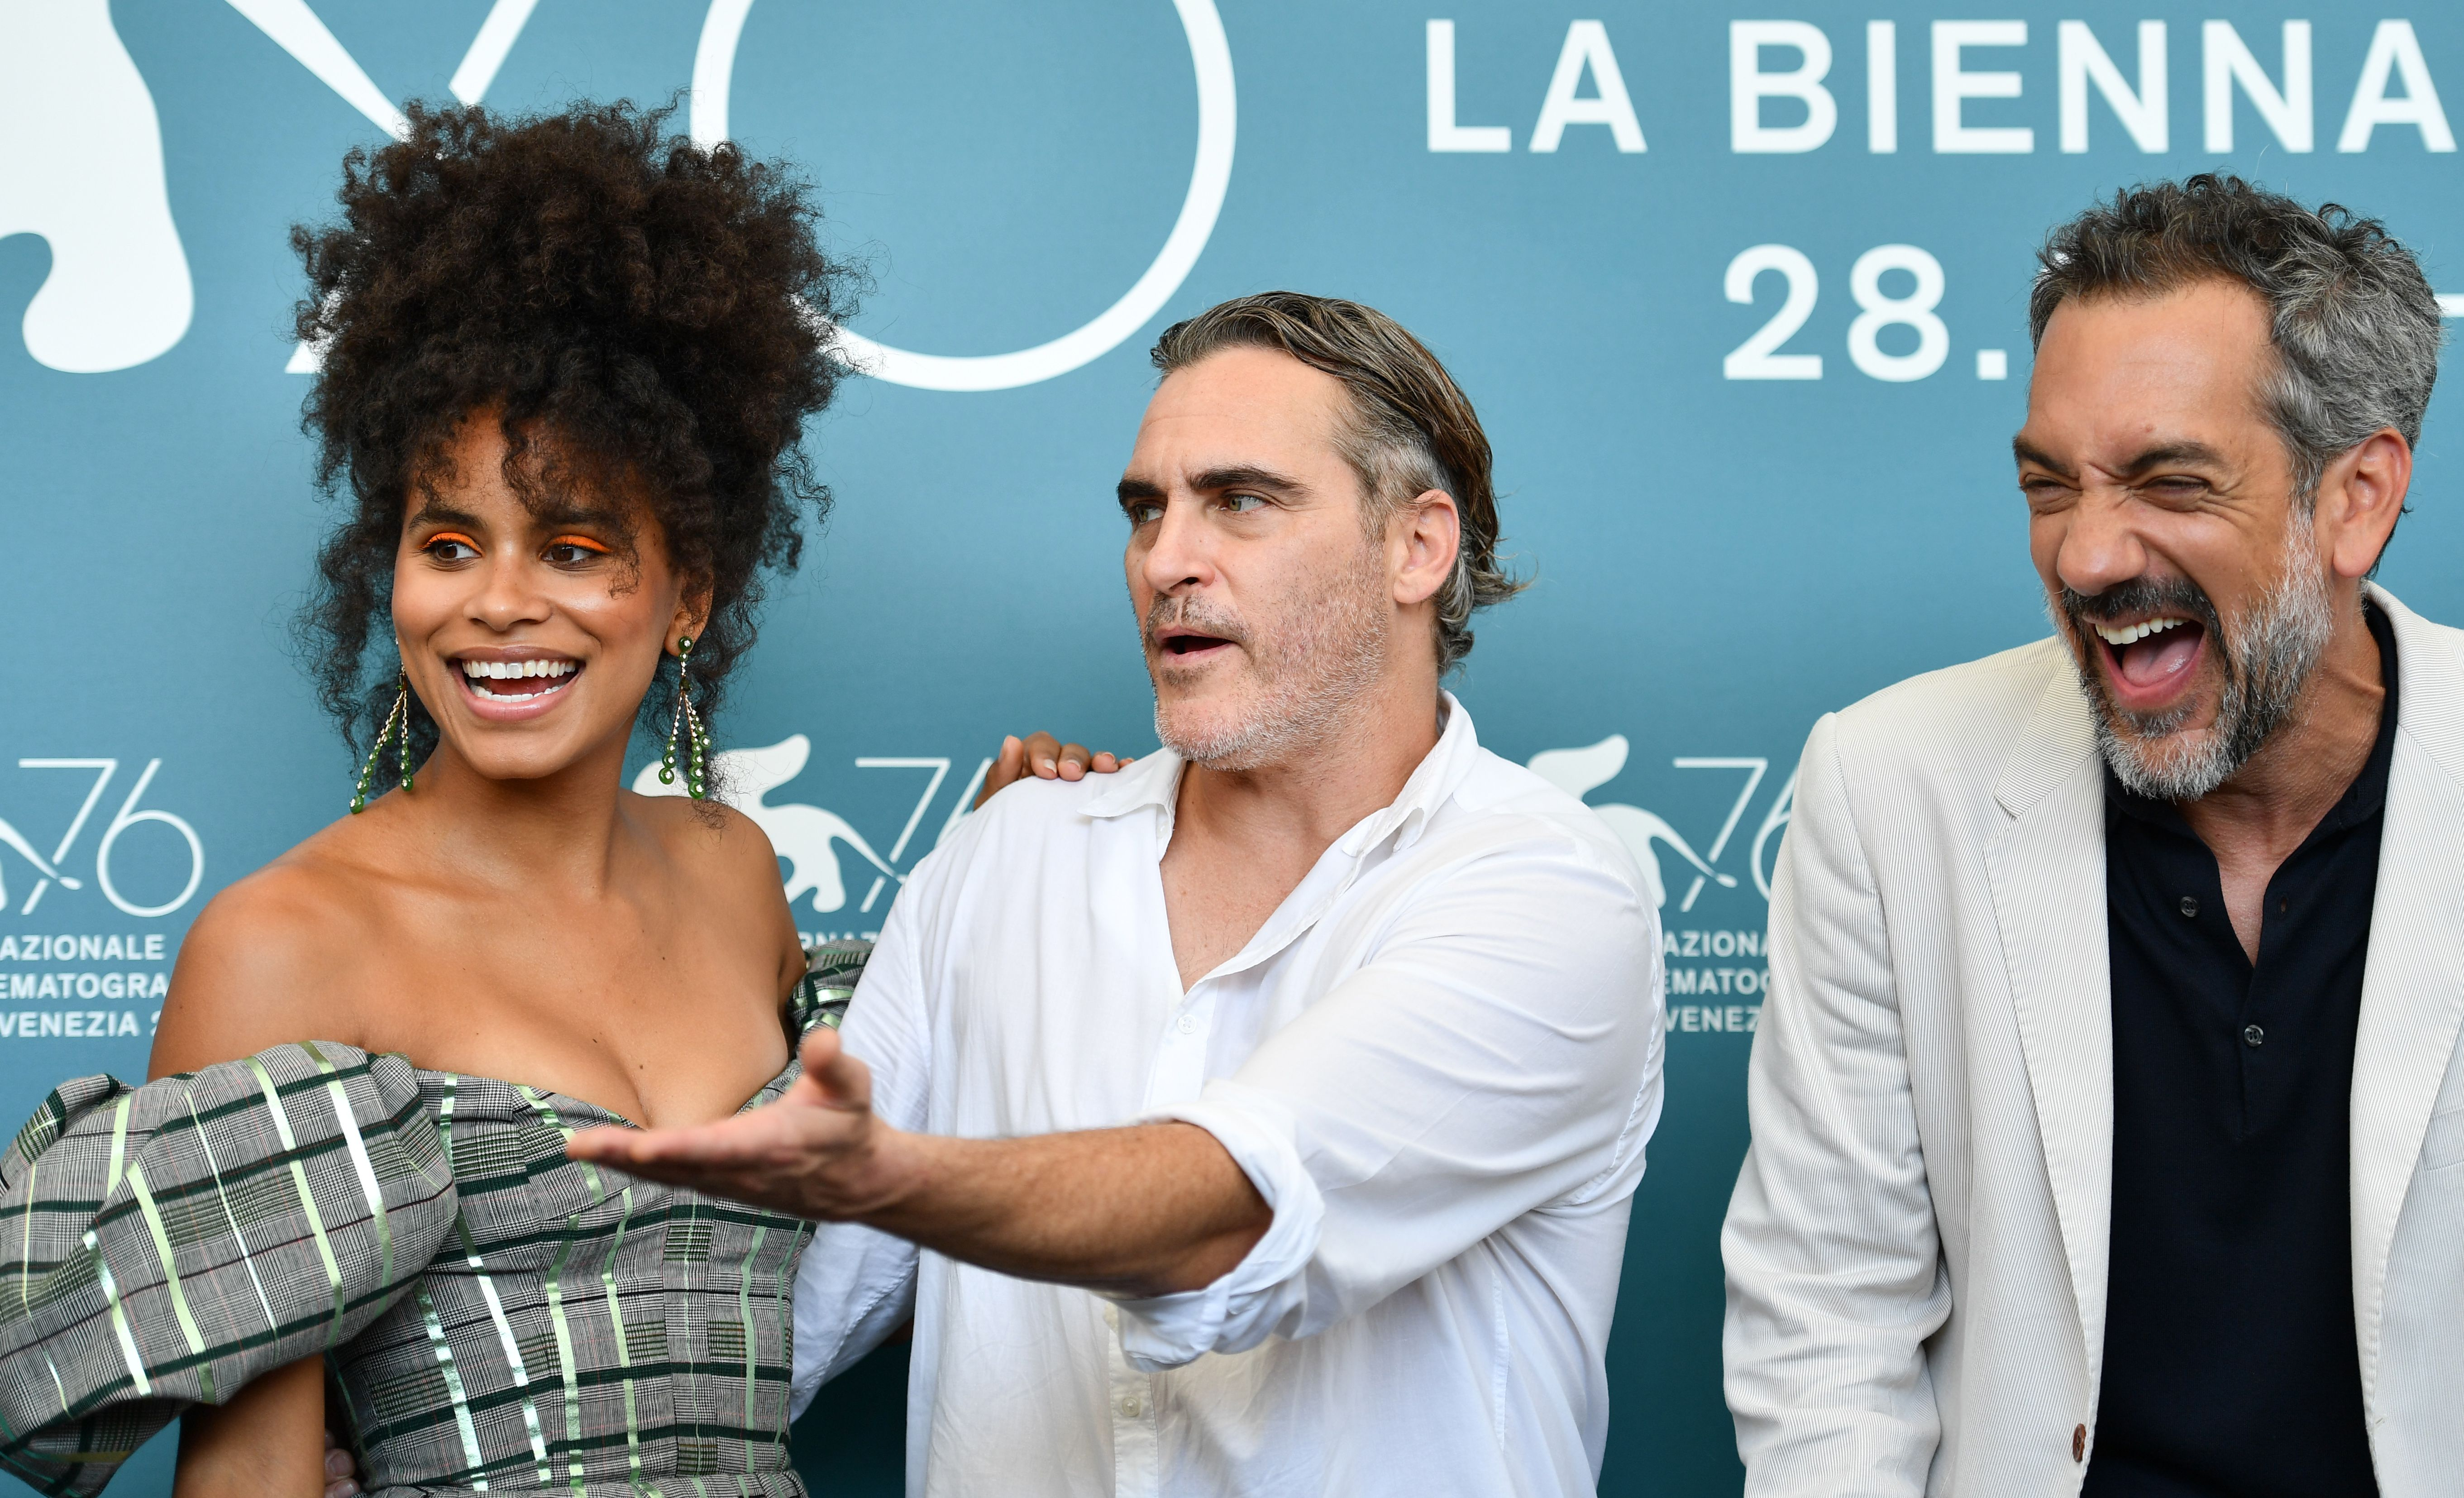 Zazie Beetz, Joaquin Phoenix and director Todd Phillips attend a photocall for the film  Joker  on August 31, 2019 during the 76th Venice Film Festival.